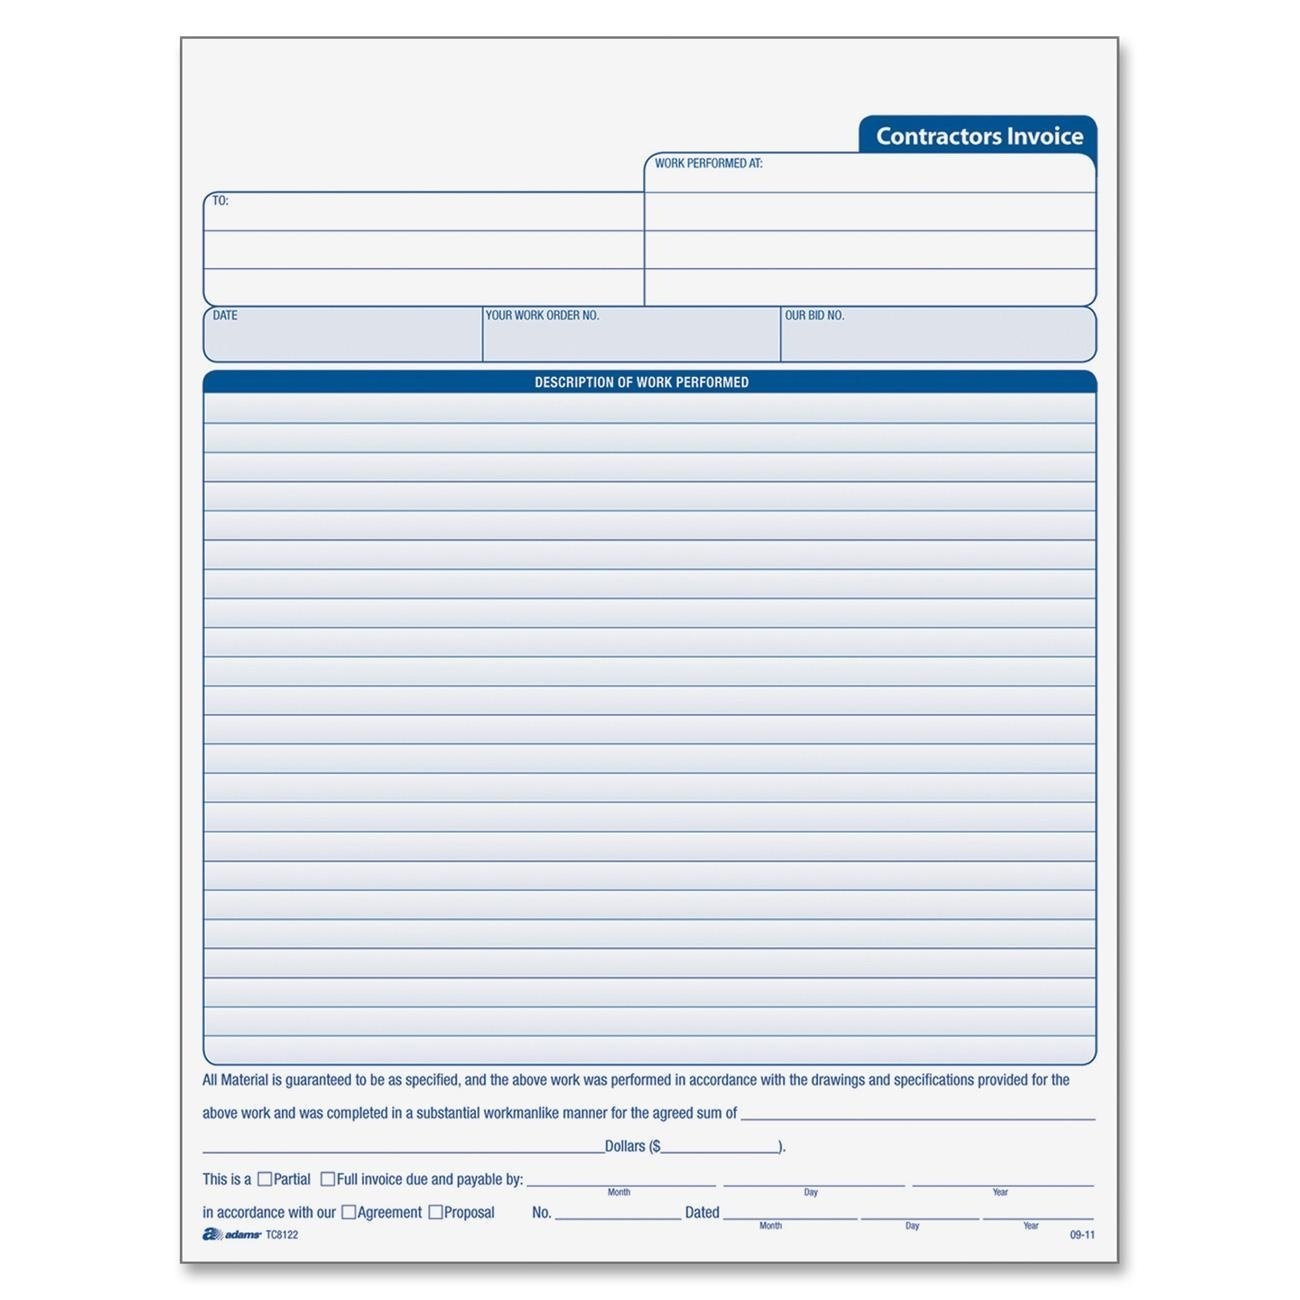 Free General Contractor Invoice Forms